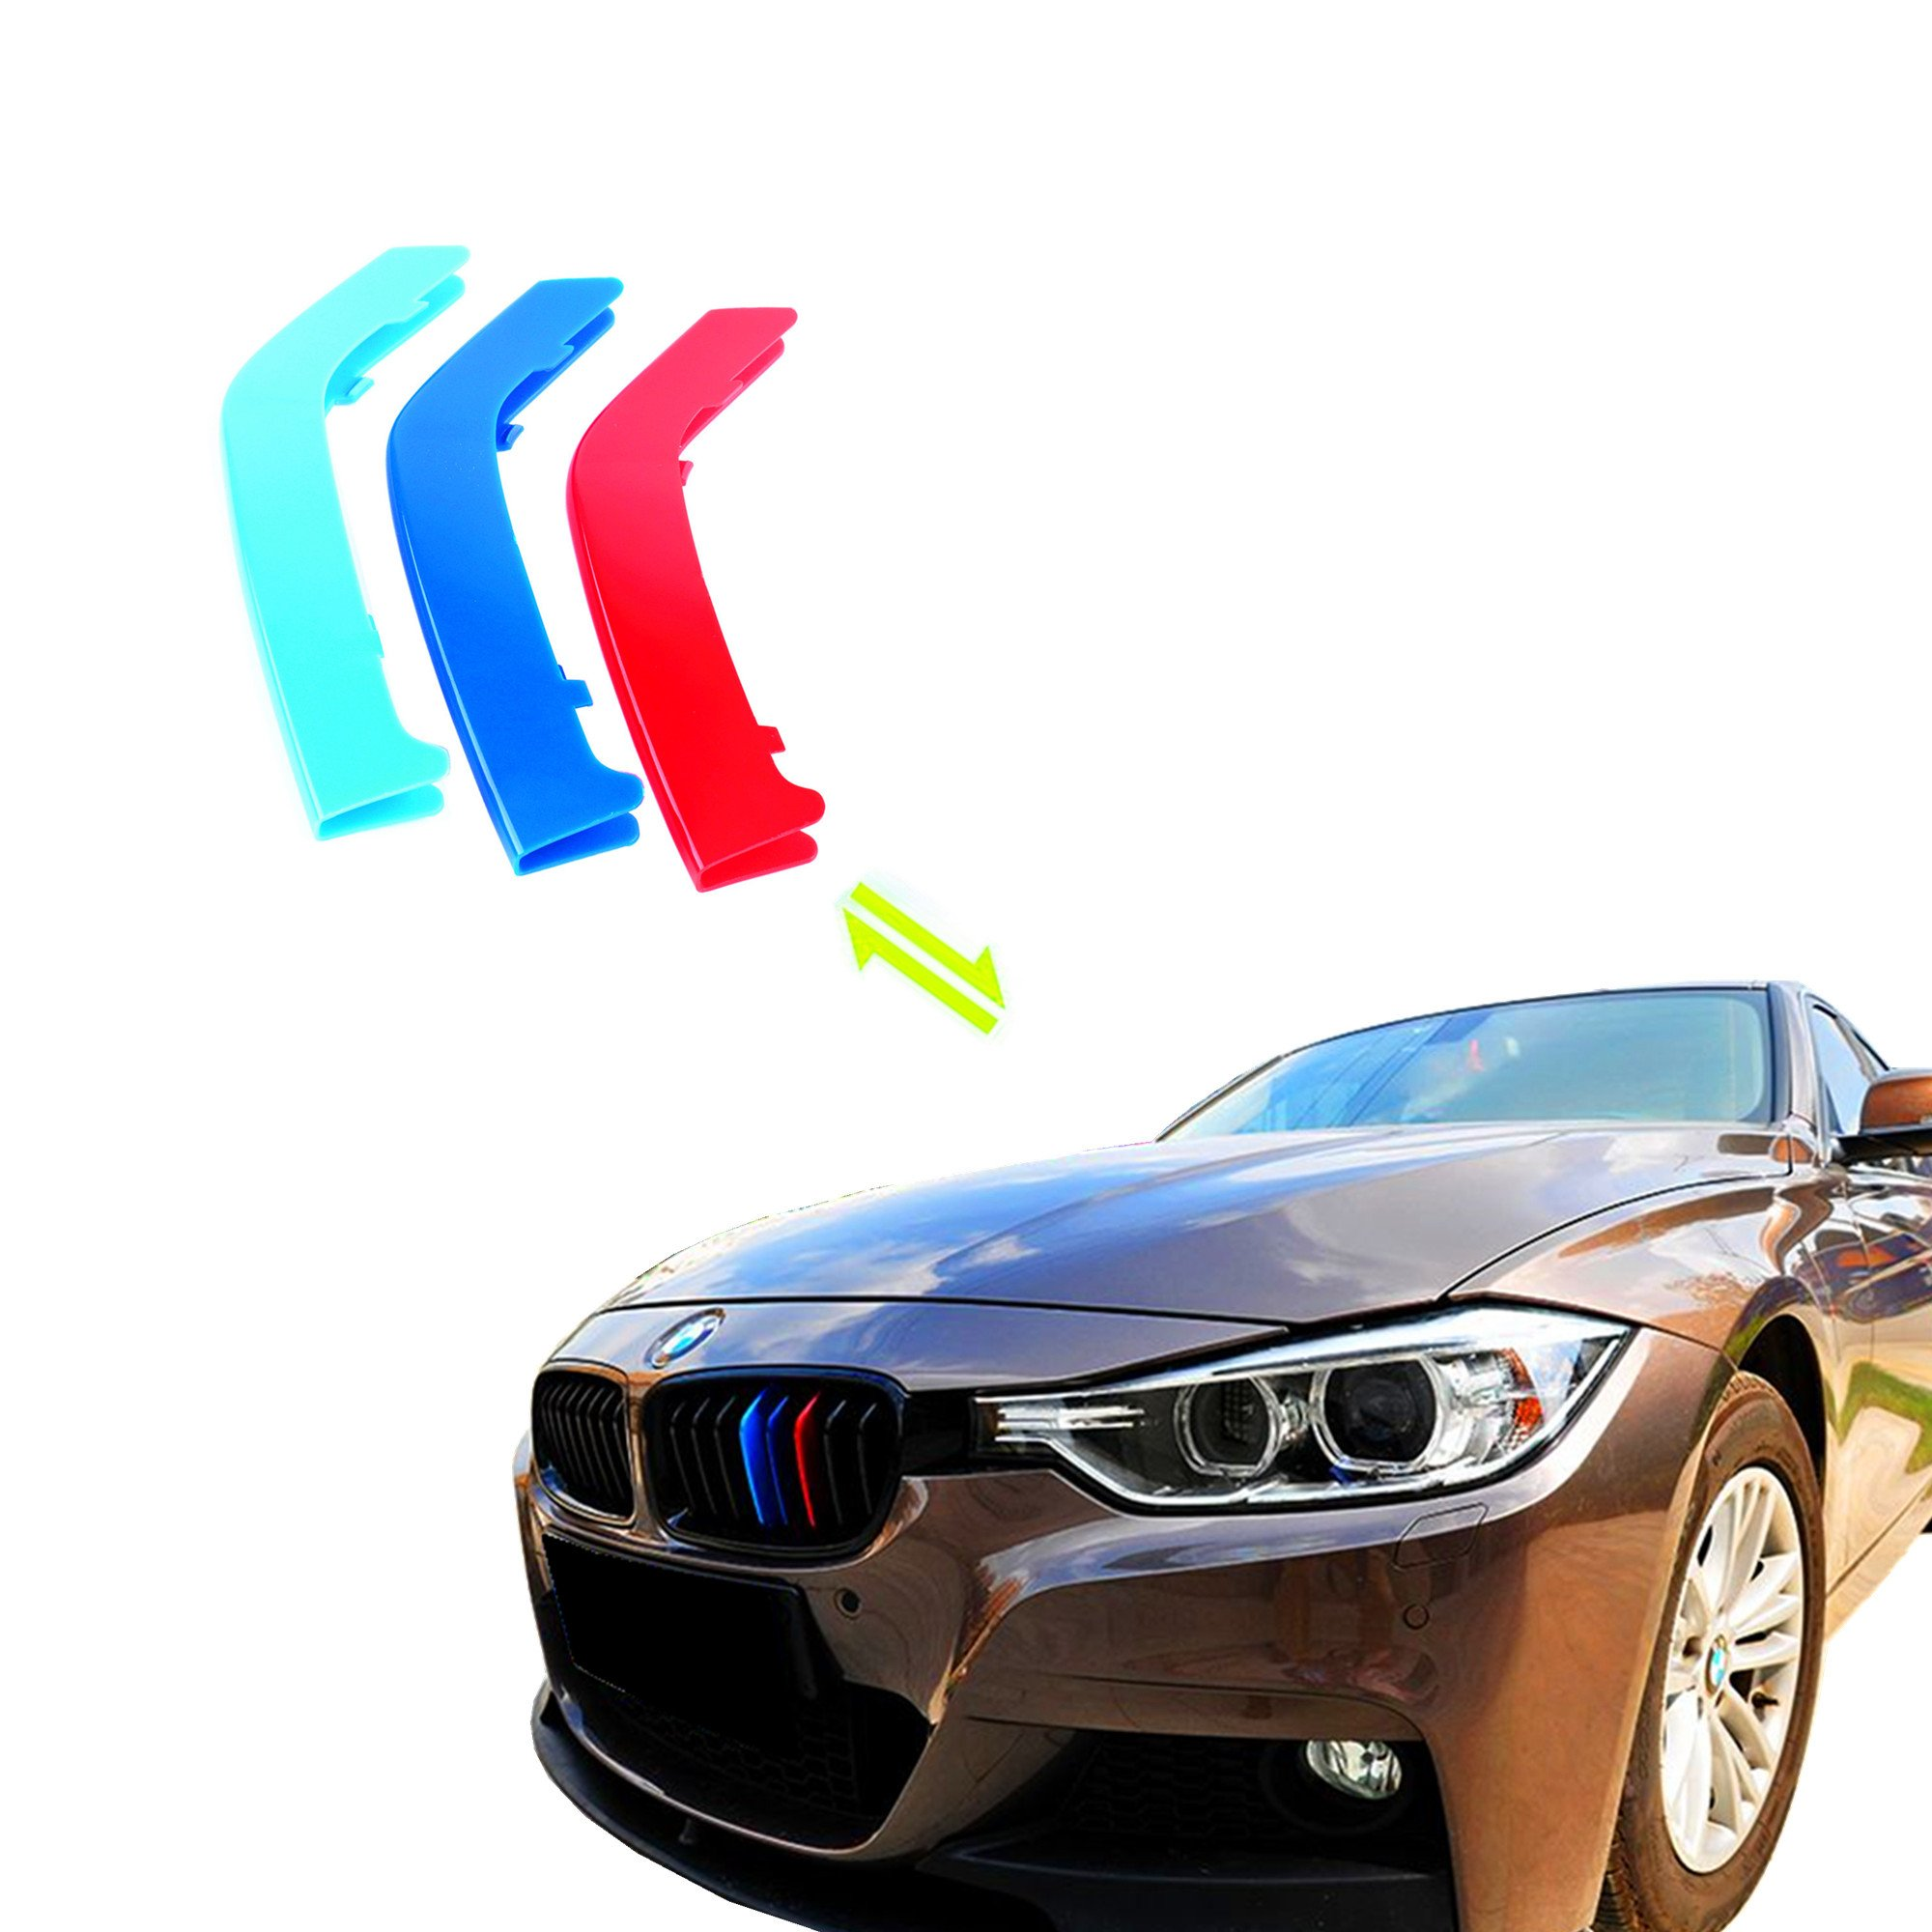 Jackey Awesome Exact Fit///M-Colored Grille Insert Trims For 2013-2017 BMW F30 F31 3 Series 320i 328d 328i 335i M-Performance Black Kidney Grilles (For BMW 2013-2017 3 Series,8 Beams)